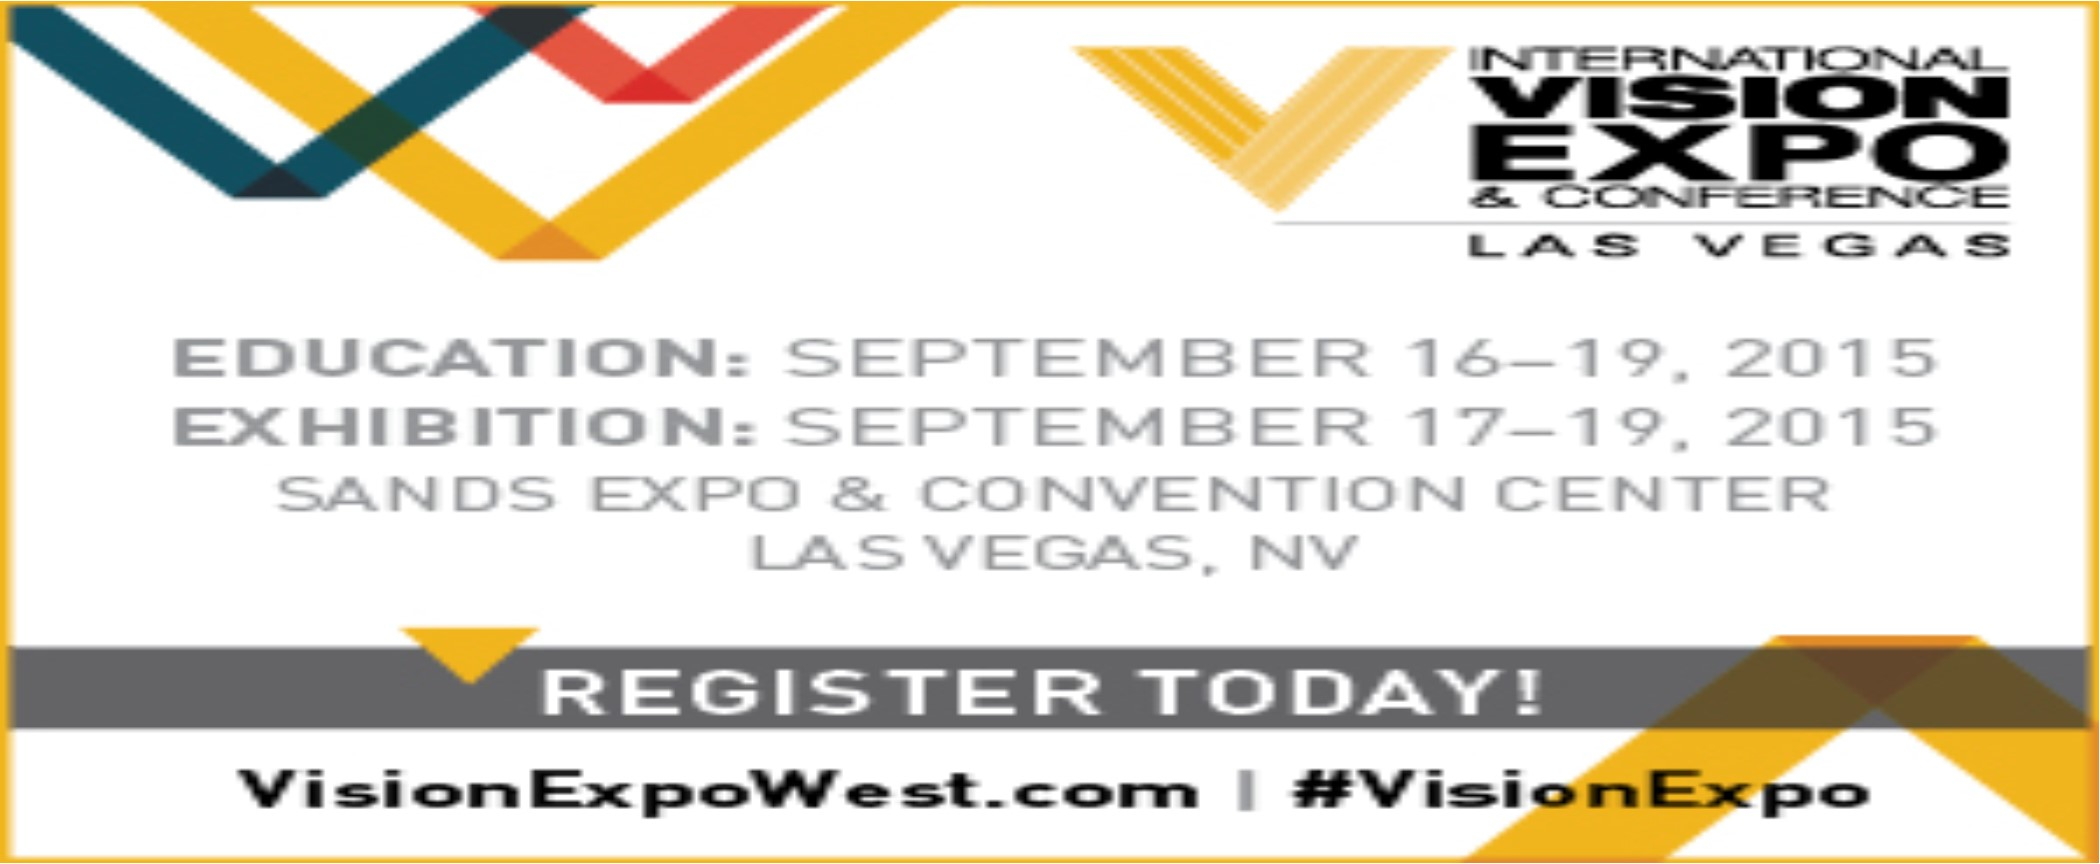 Vision-Expo-West-1